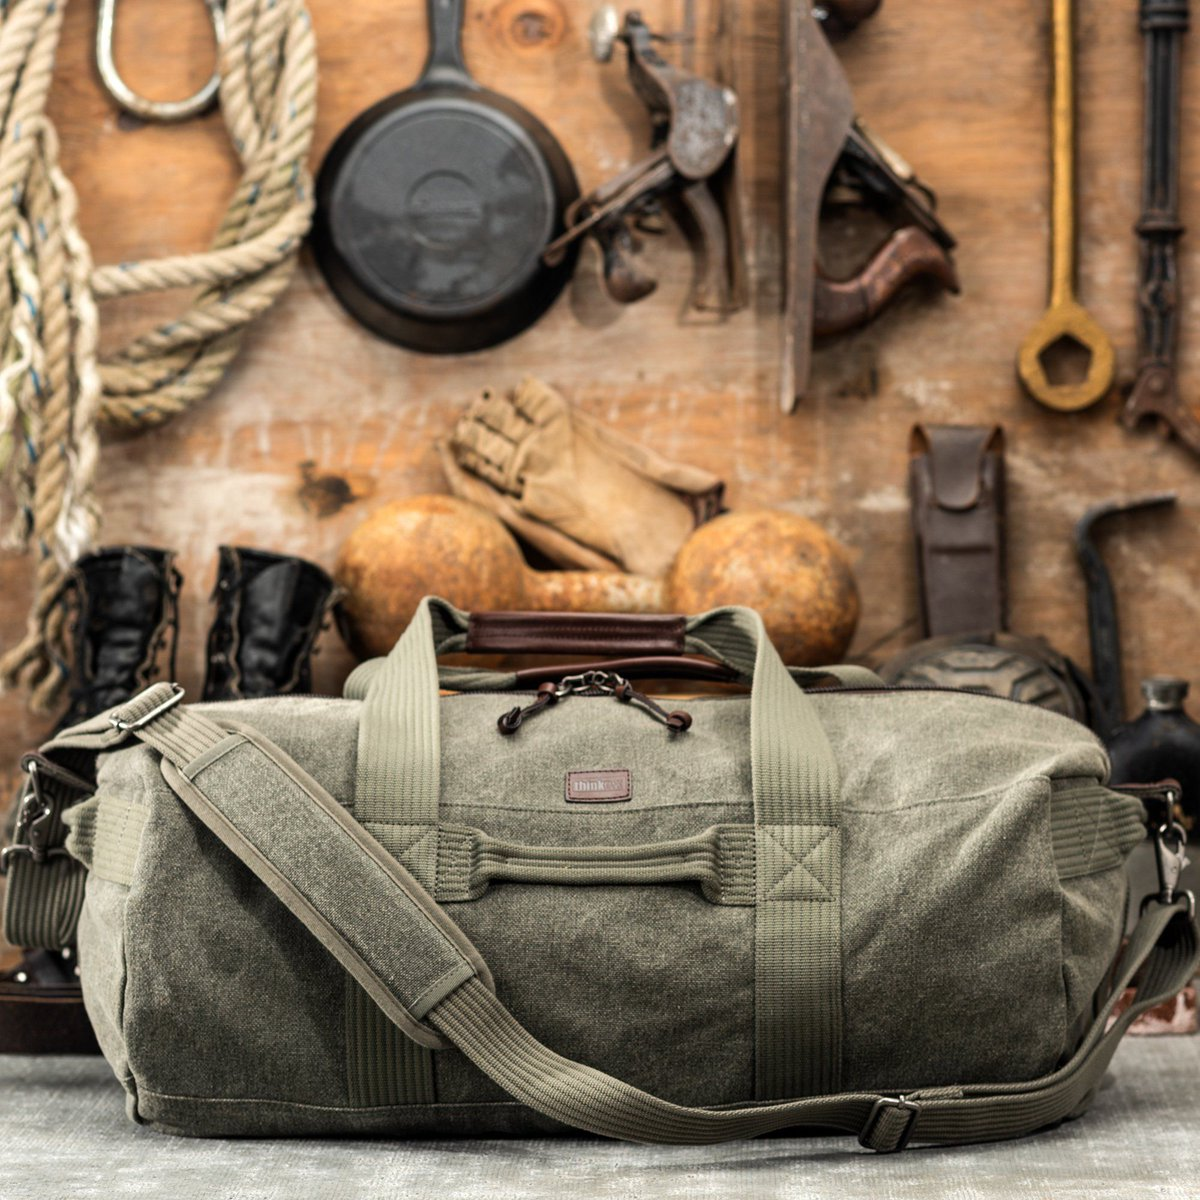 Love my ThinkTank camera bags, and now I see they're making a duffel.  Looks like it's as rugged as the camera stuff I love.   #ad